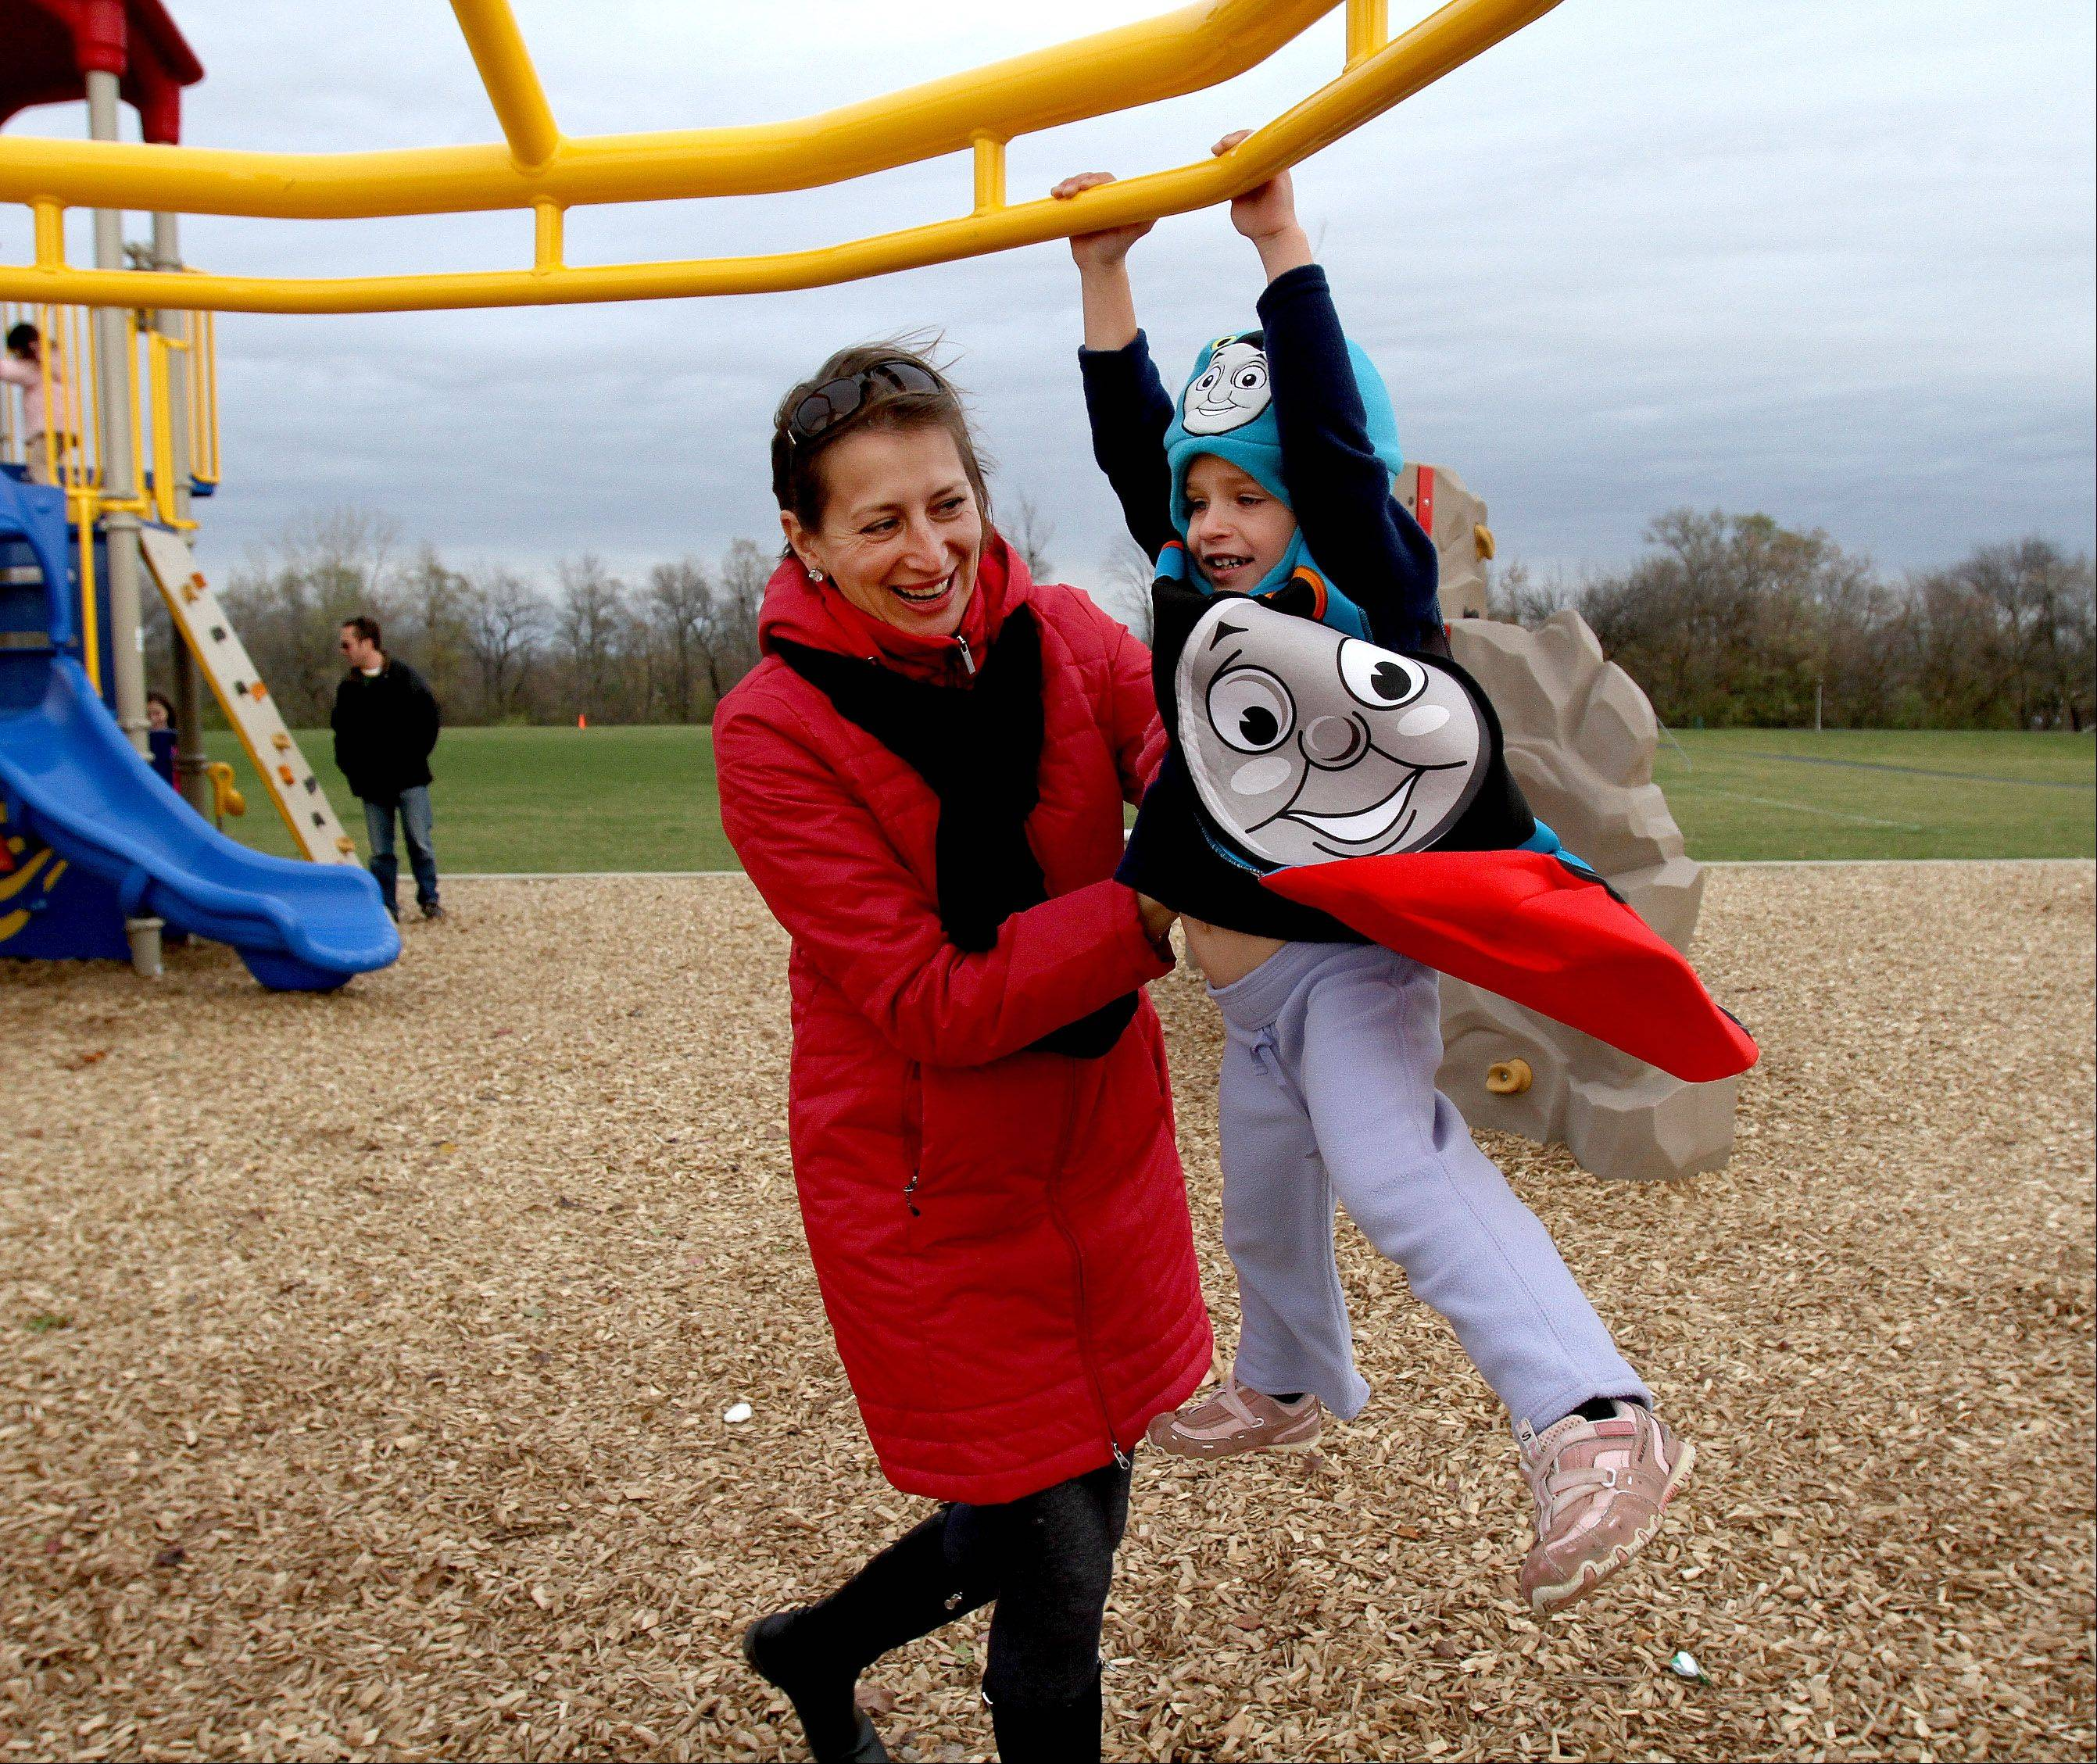 Katia Noti and her daughter Fay, 3, of Roselle, check out the new playground outside the Clauss Recreation Center in Roselle during its grand opening Tuesday.